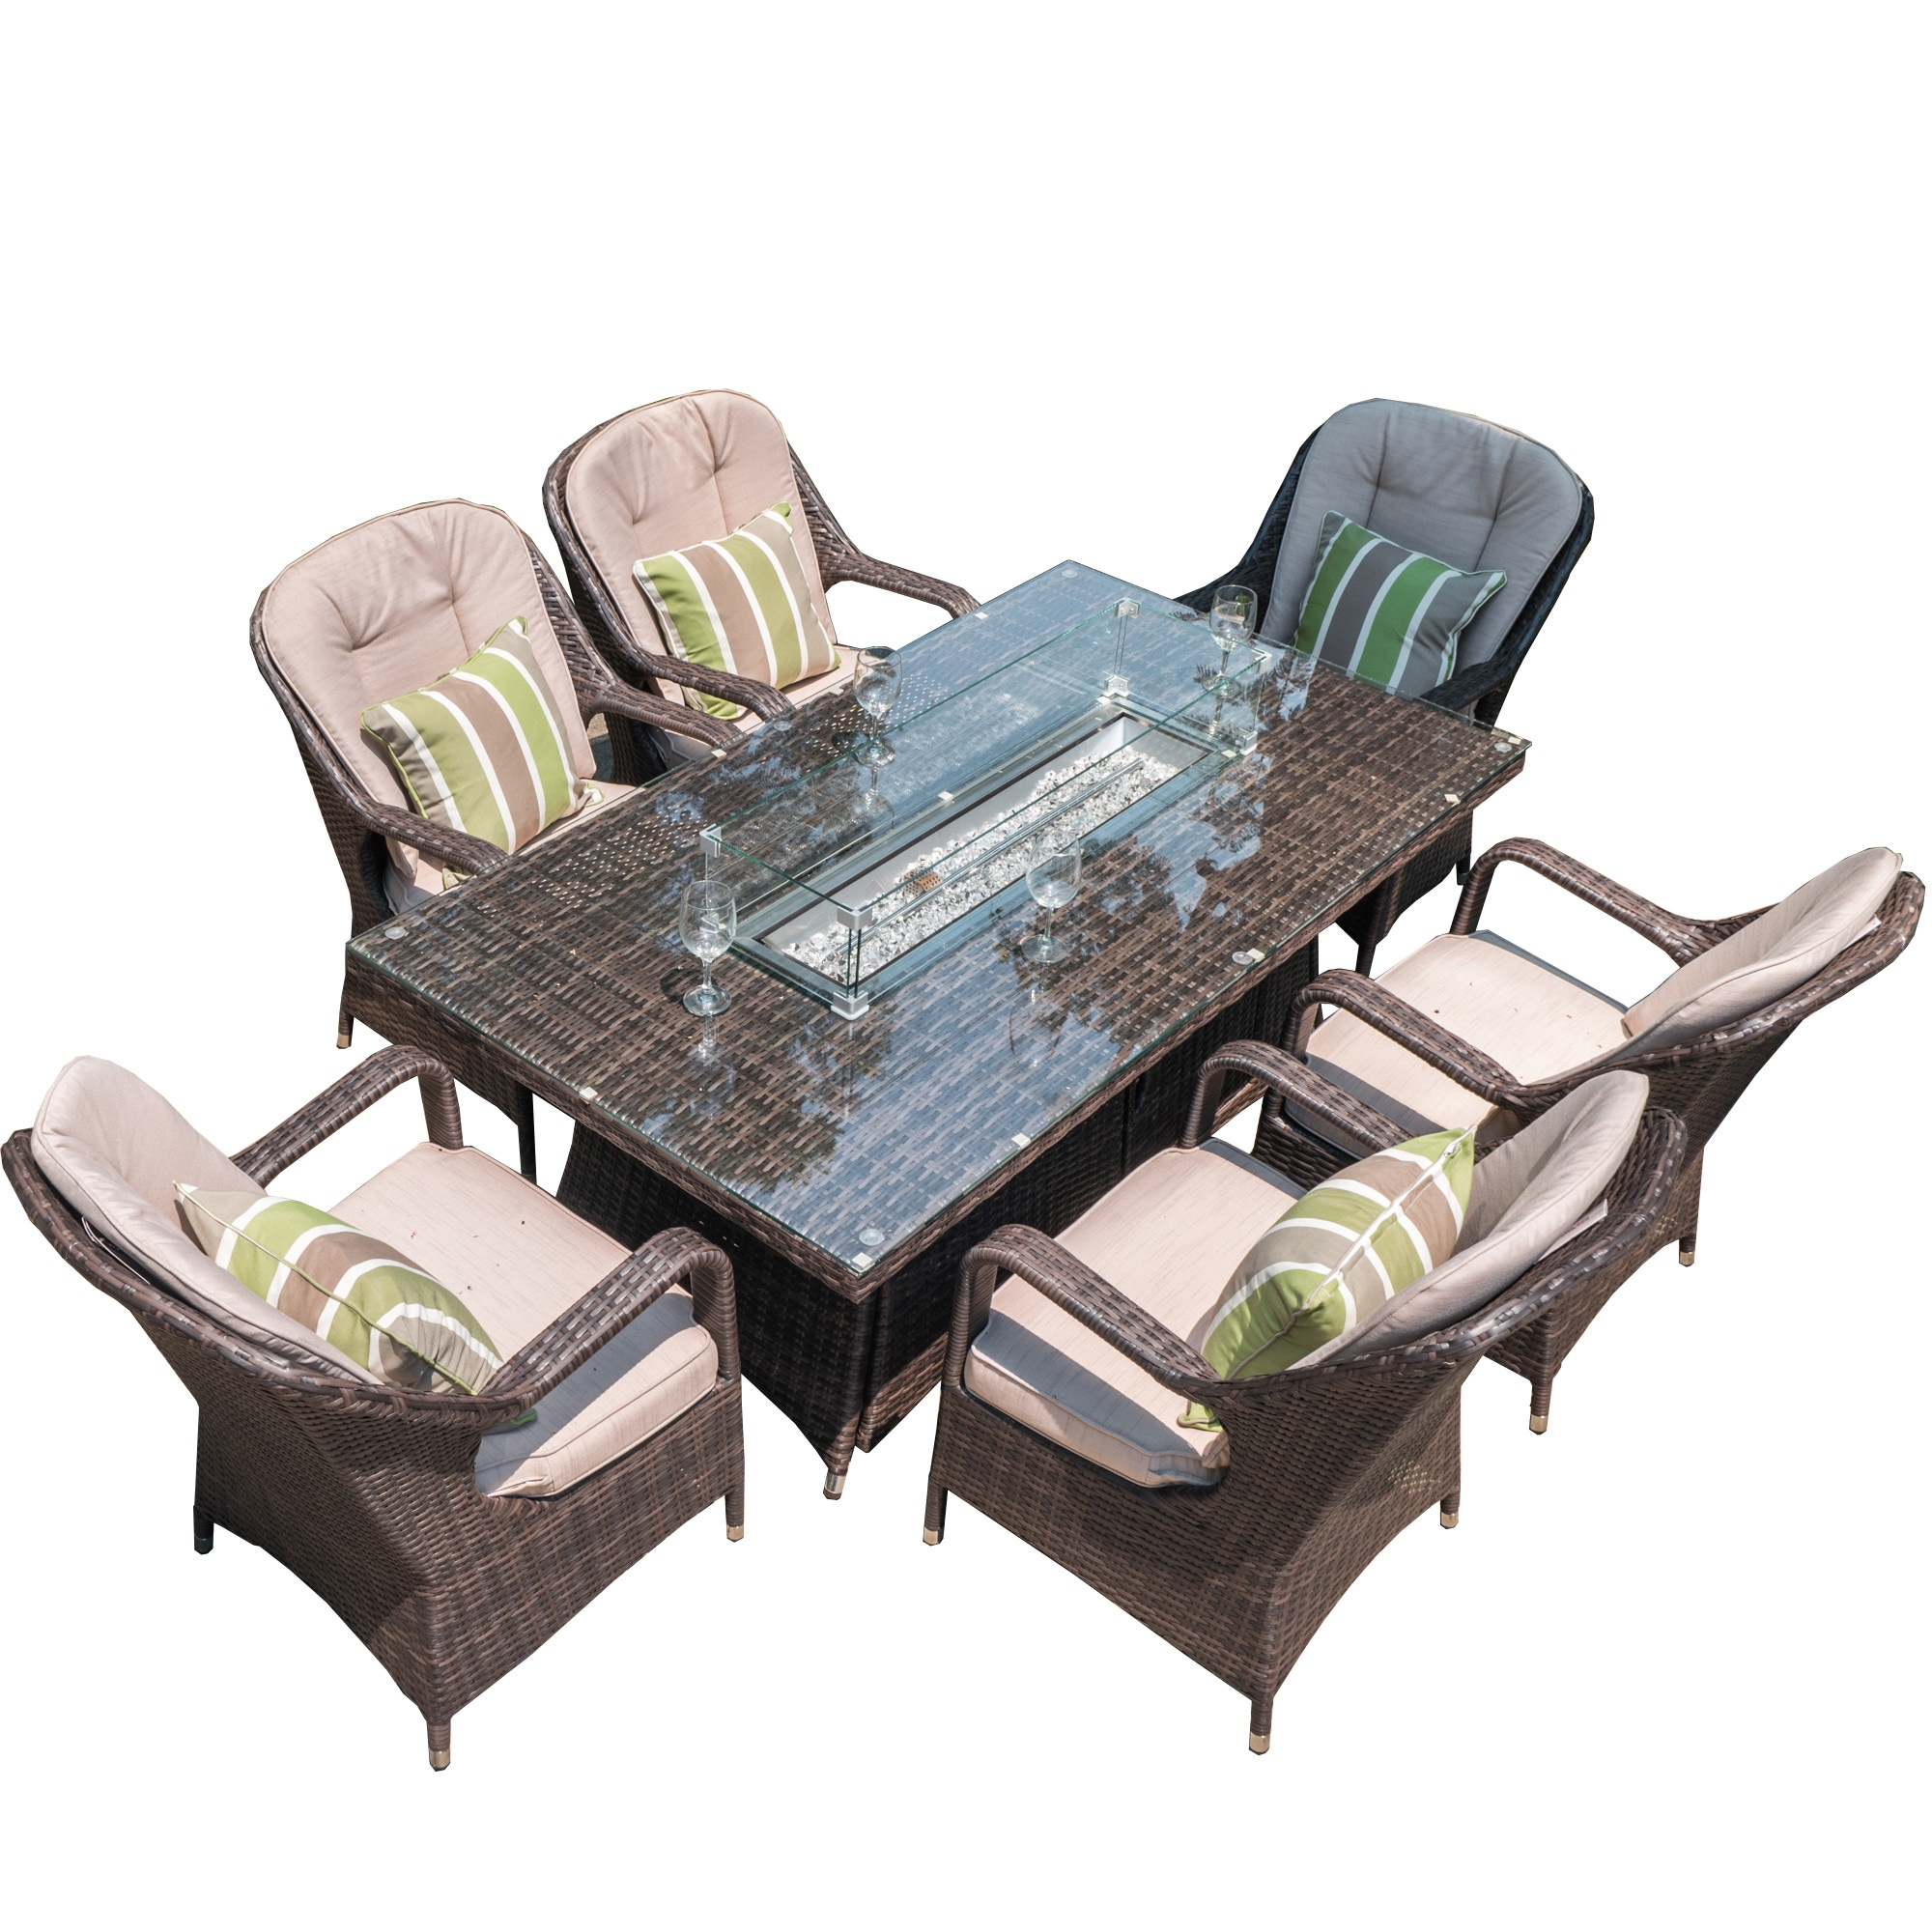 2020 Popular 6 Seat Square Gas Fire Pit Dining Table Buy Outdoor Fire Pit Table 6 Seaters Dining Tables Marble Fire Pit Table Product On Alibaba Com